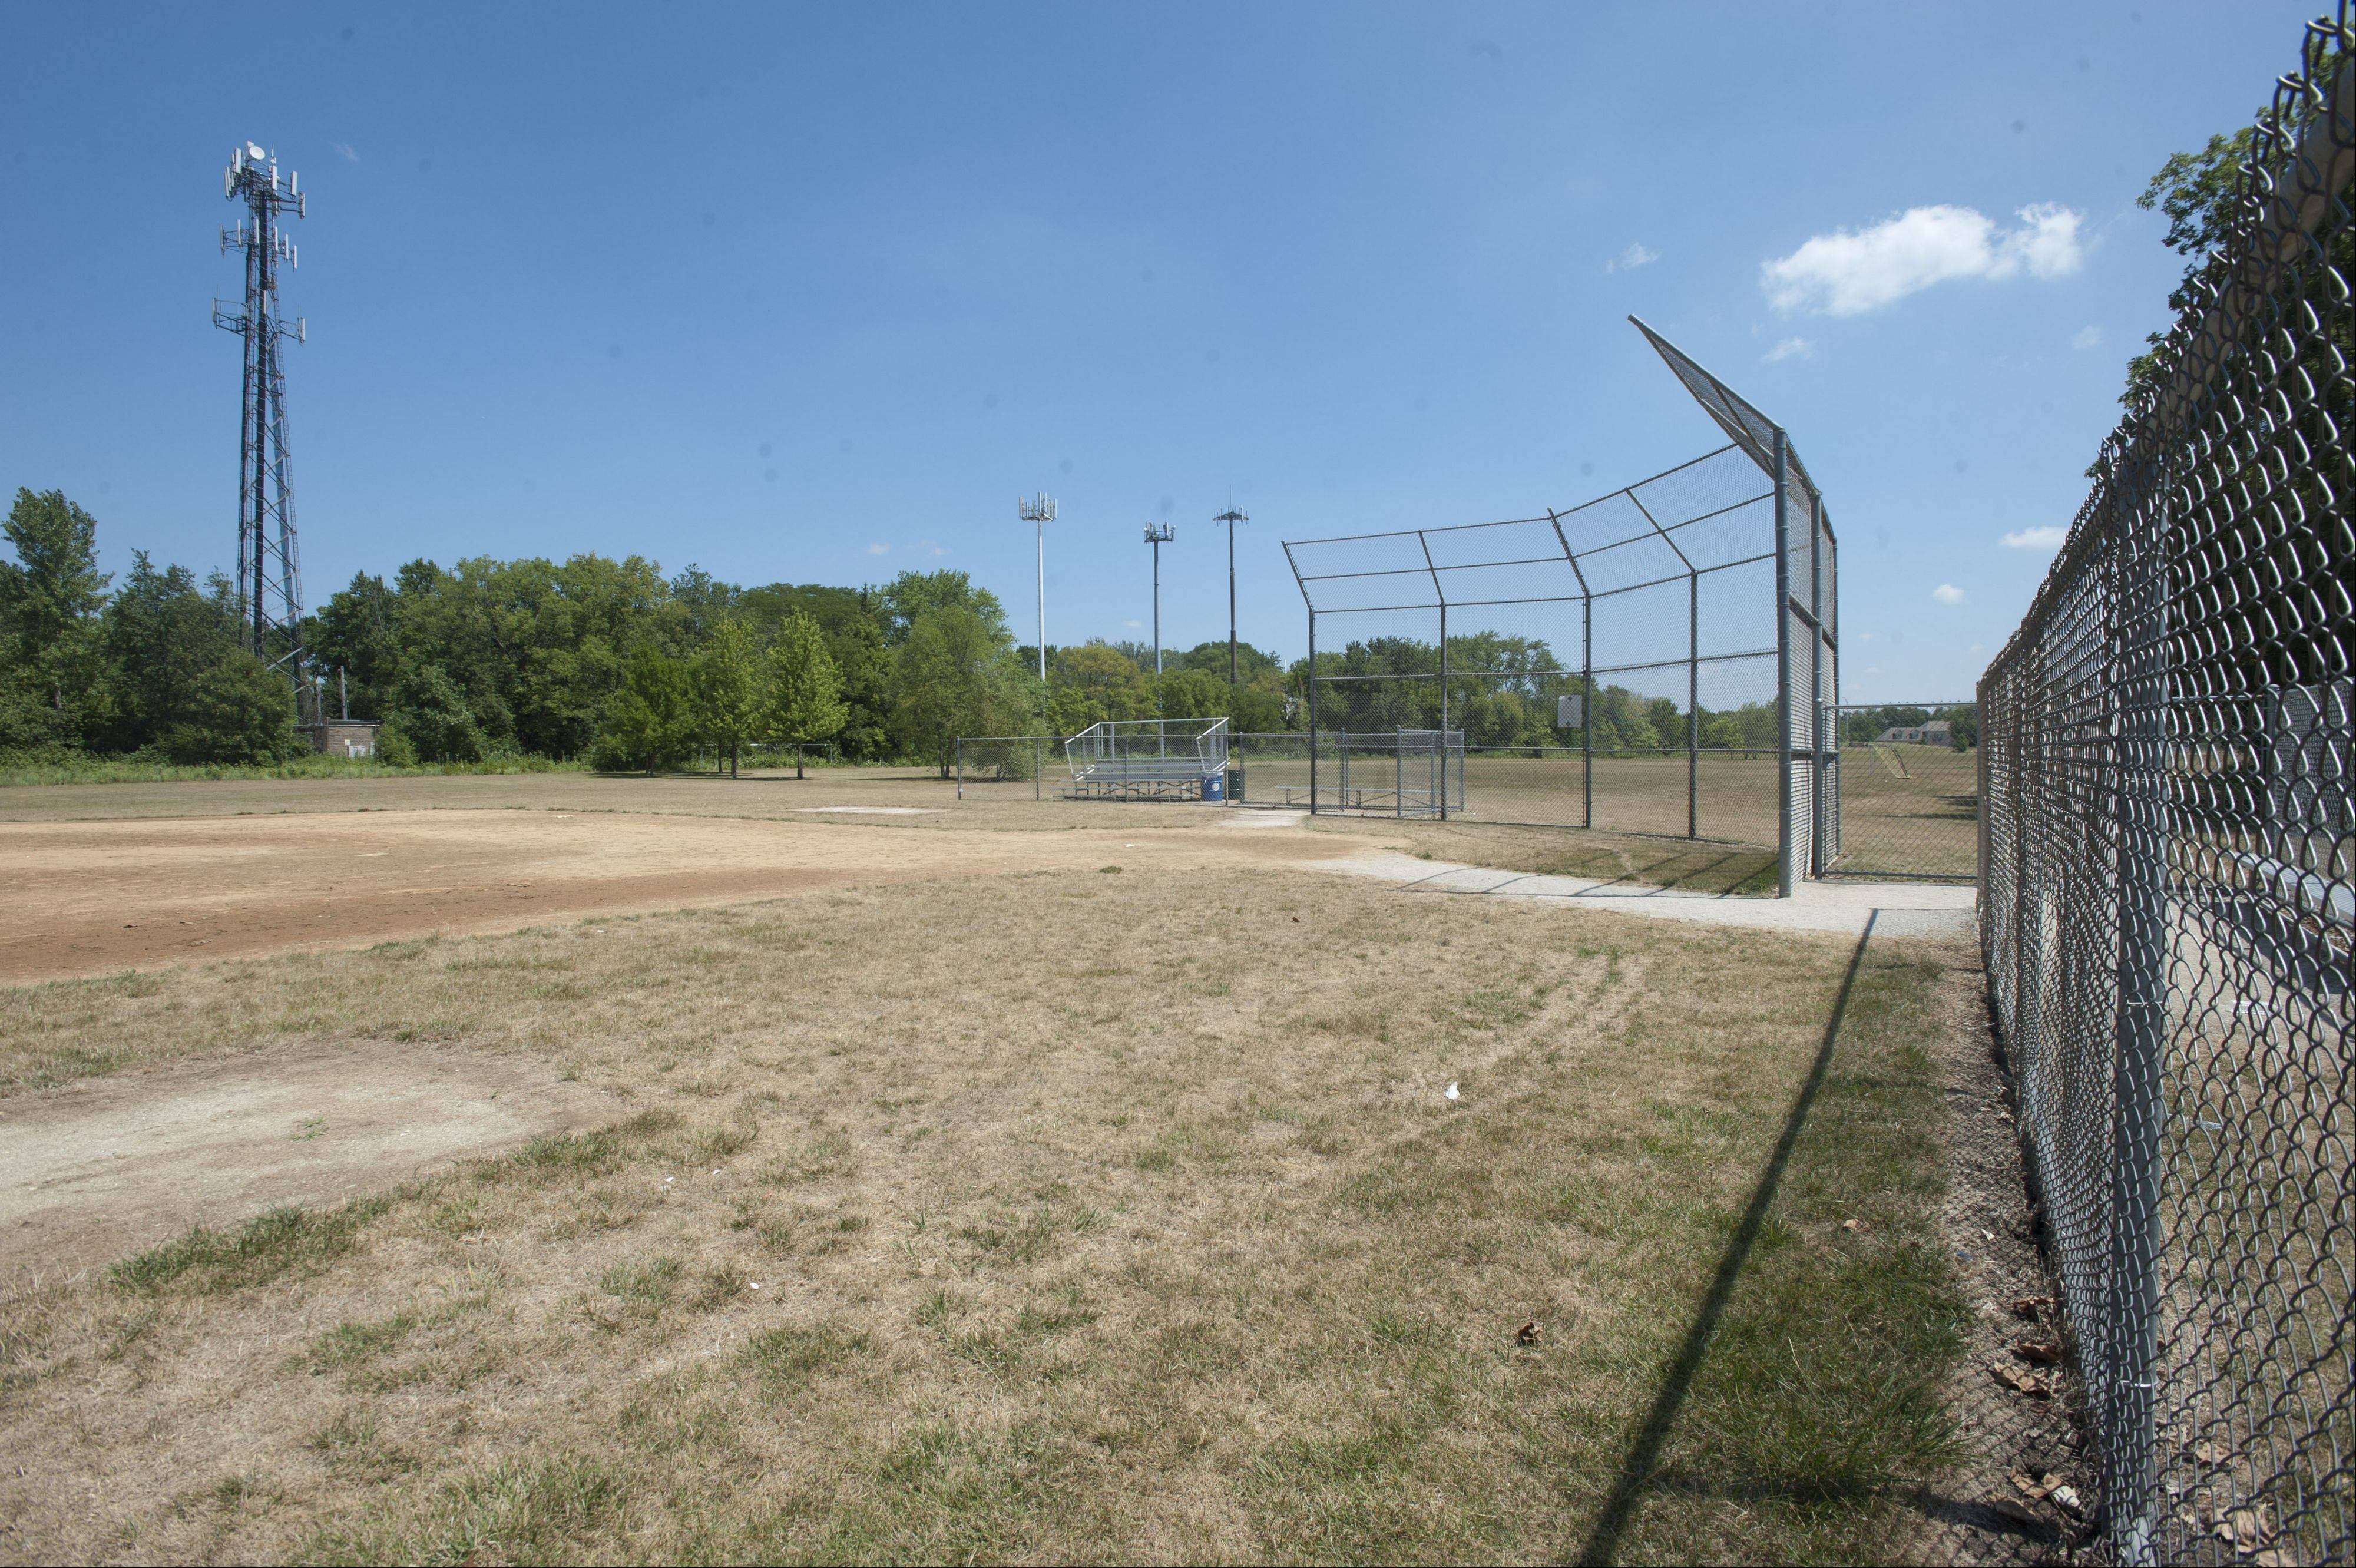 The planned renovations at Meadow Glens Park include new softball fields along with a skating pond and beanbag game equipment.